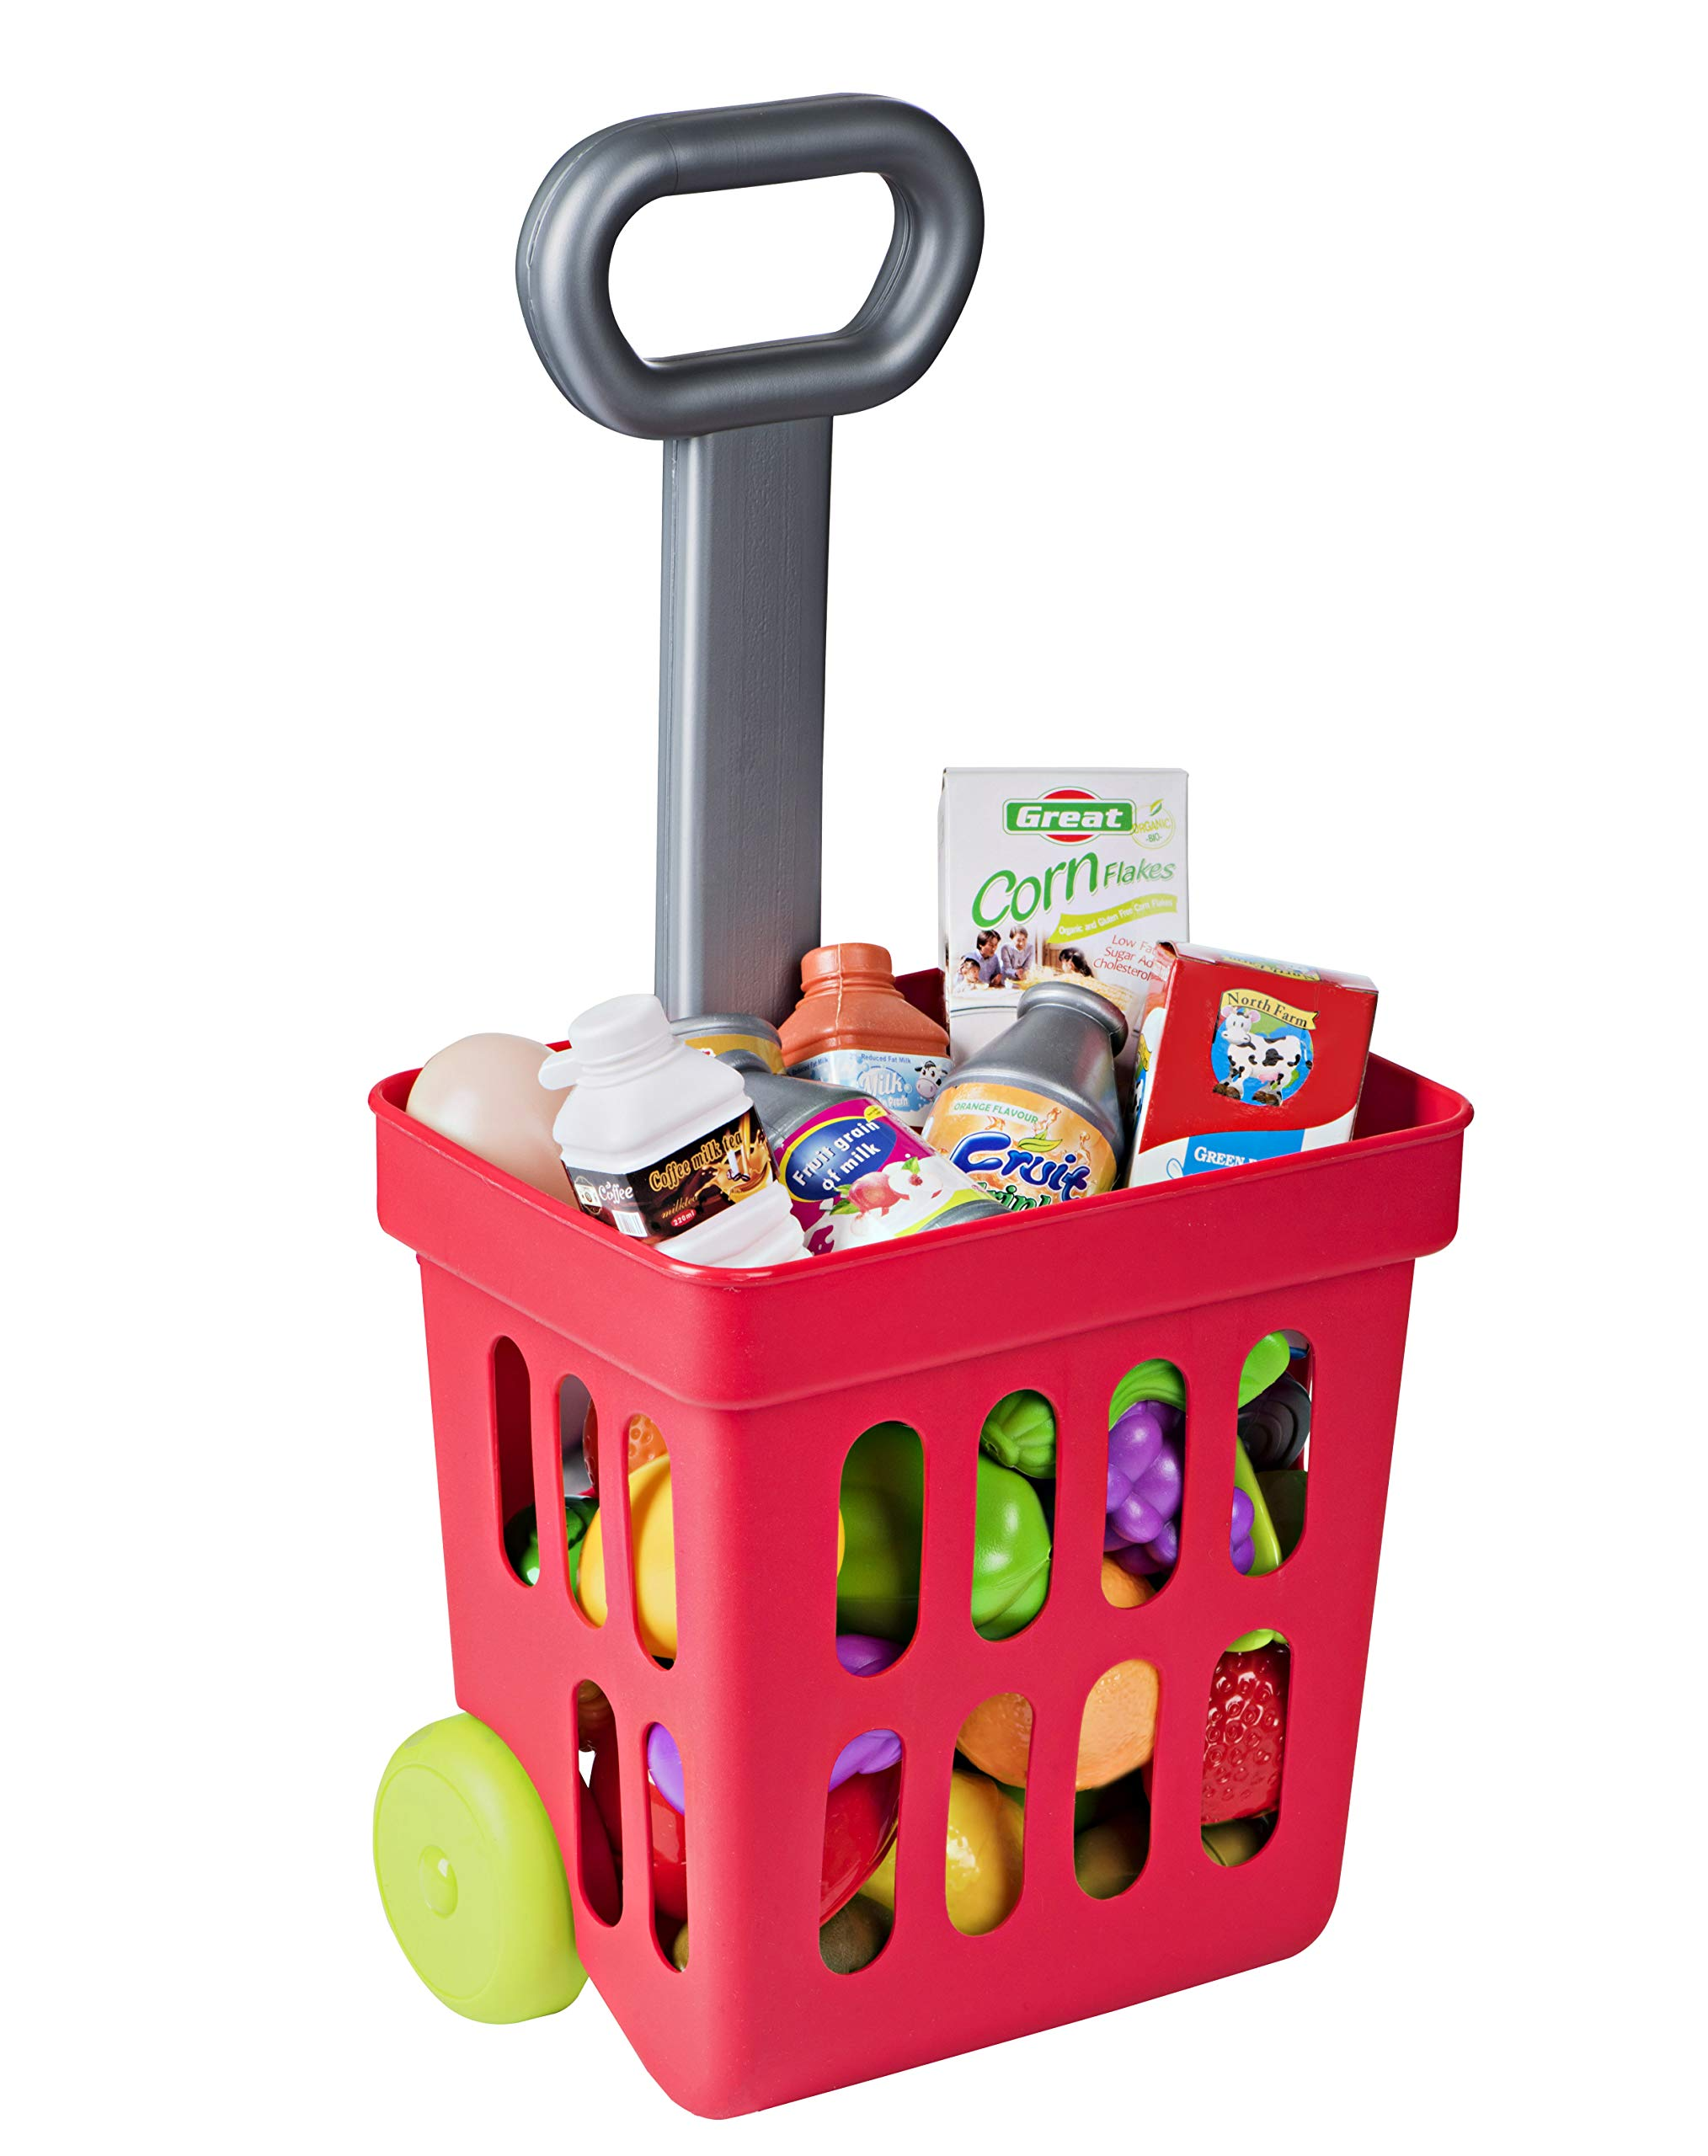 Playkidz: Shopping Cart, Fill and Roll Grocery Basket - 24 Piece Toy Shopping Basket and Pretend Food Playset - Grocery, Kitchen and Plastic Food Toys for Toddlers Age 3 Years and Up by Playkidz